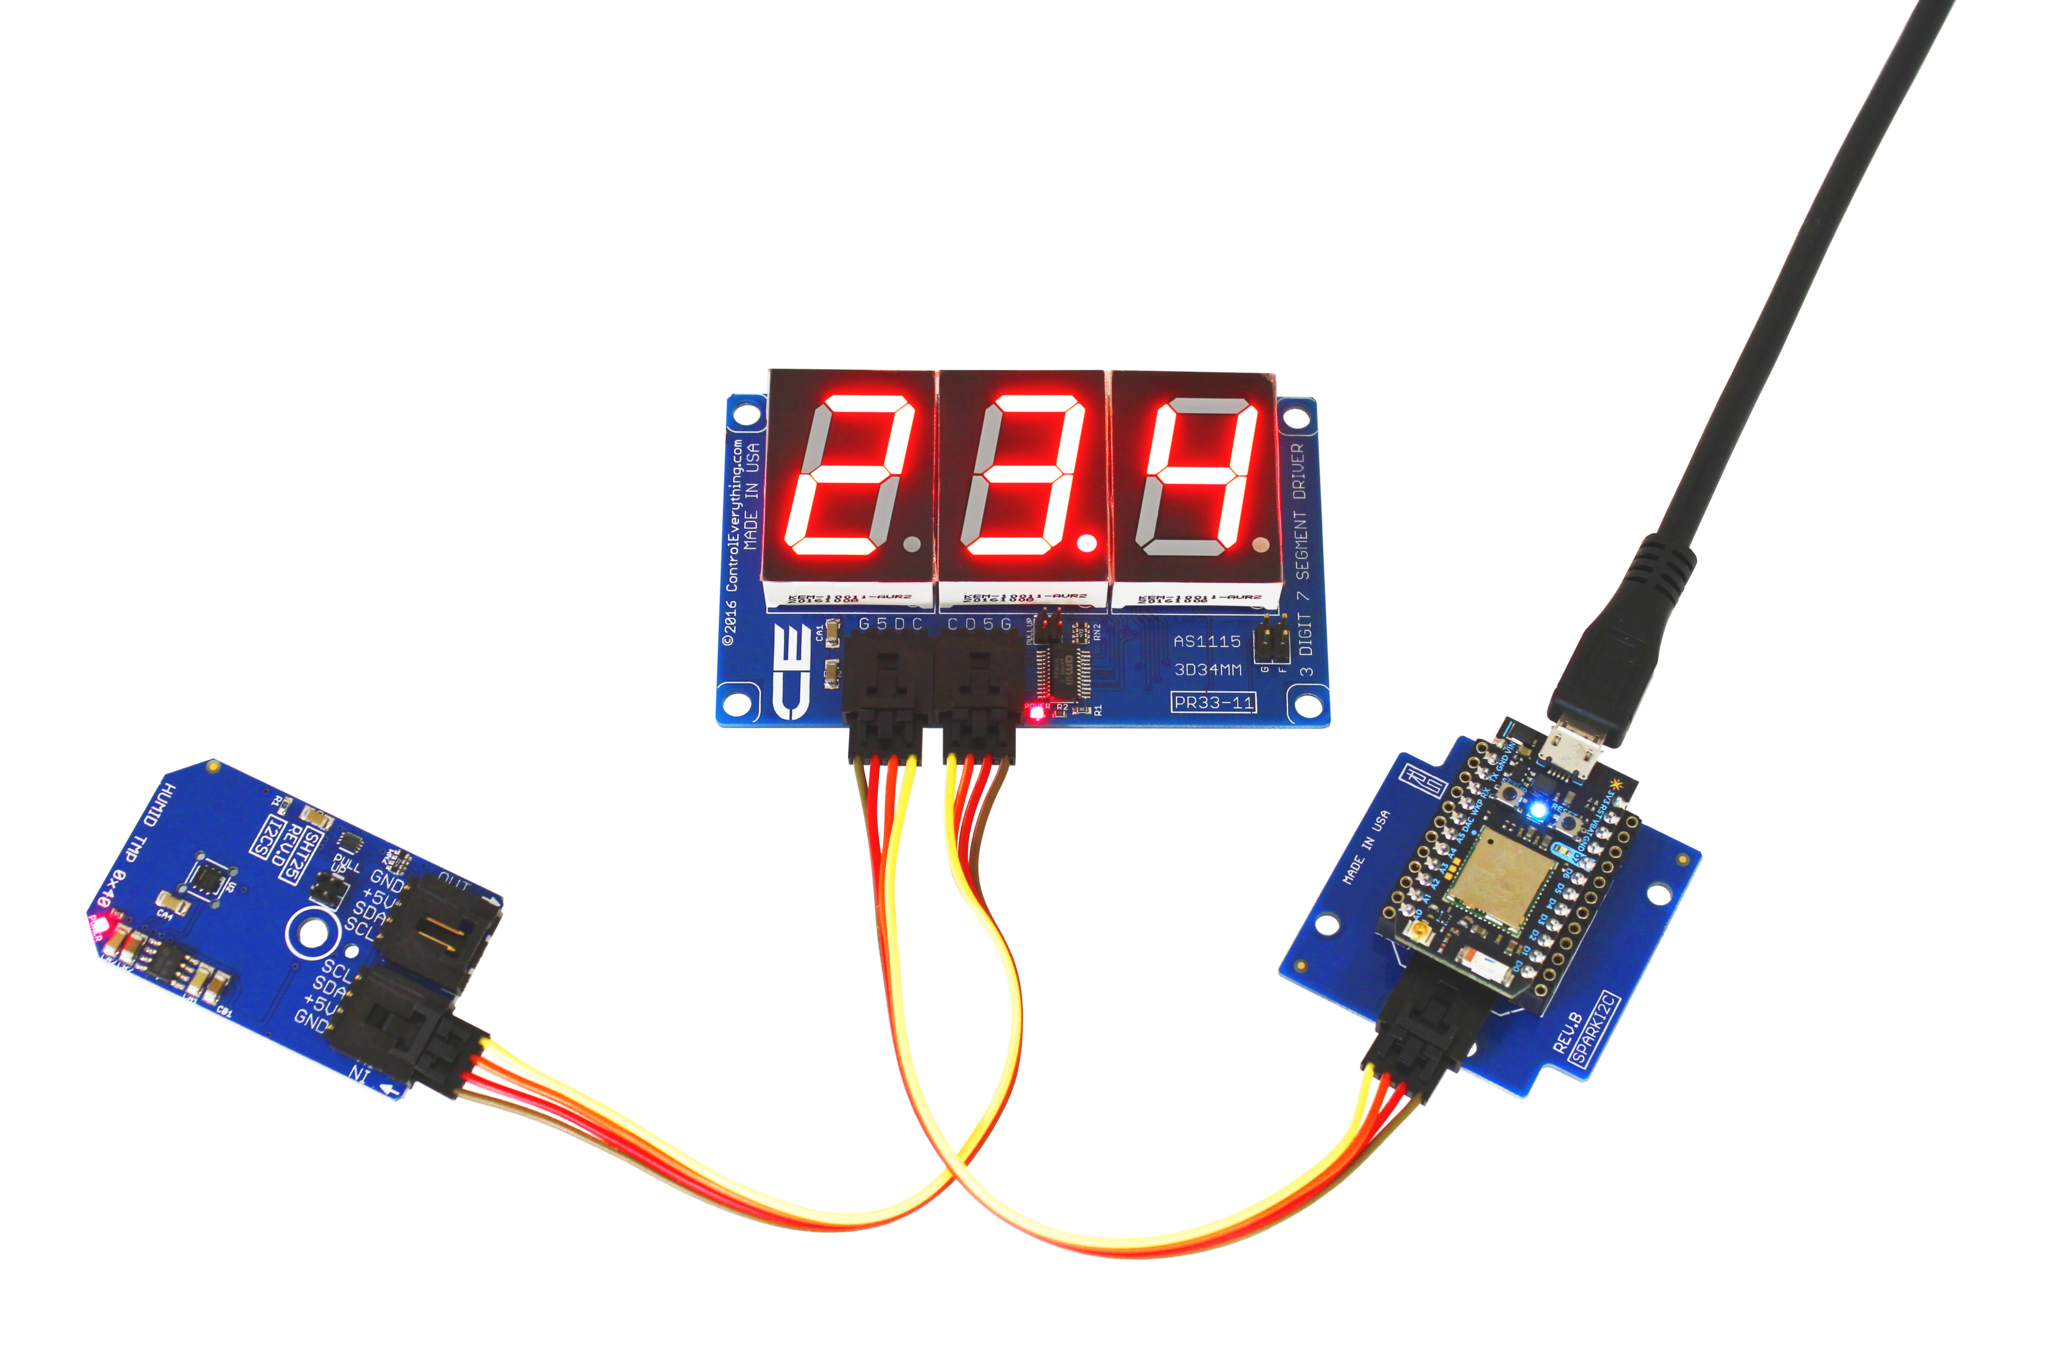 As1115 34mm 3 Character Red 7 Segment Hexidecimal Display With I2c Water Level Indicator Electronic Circuit That Uses A 7segment